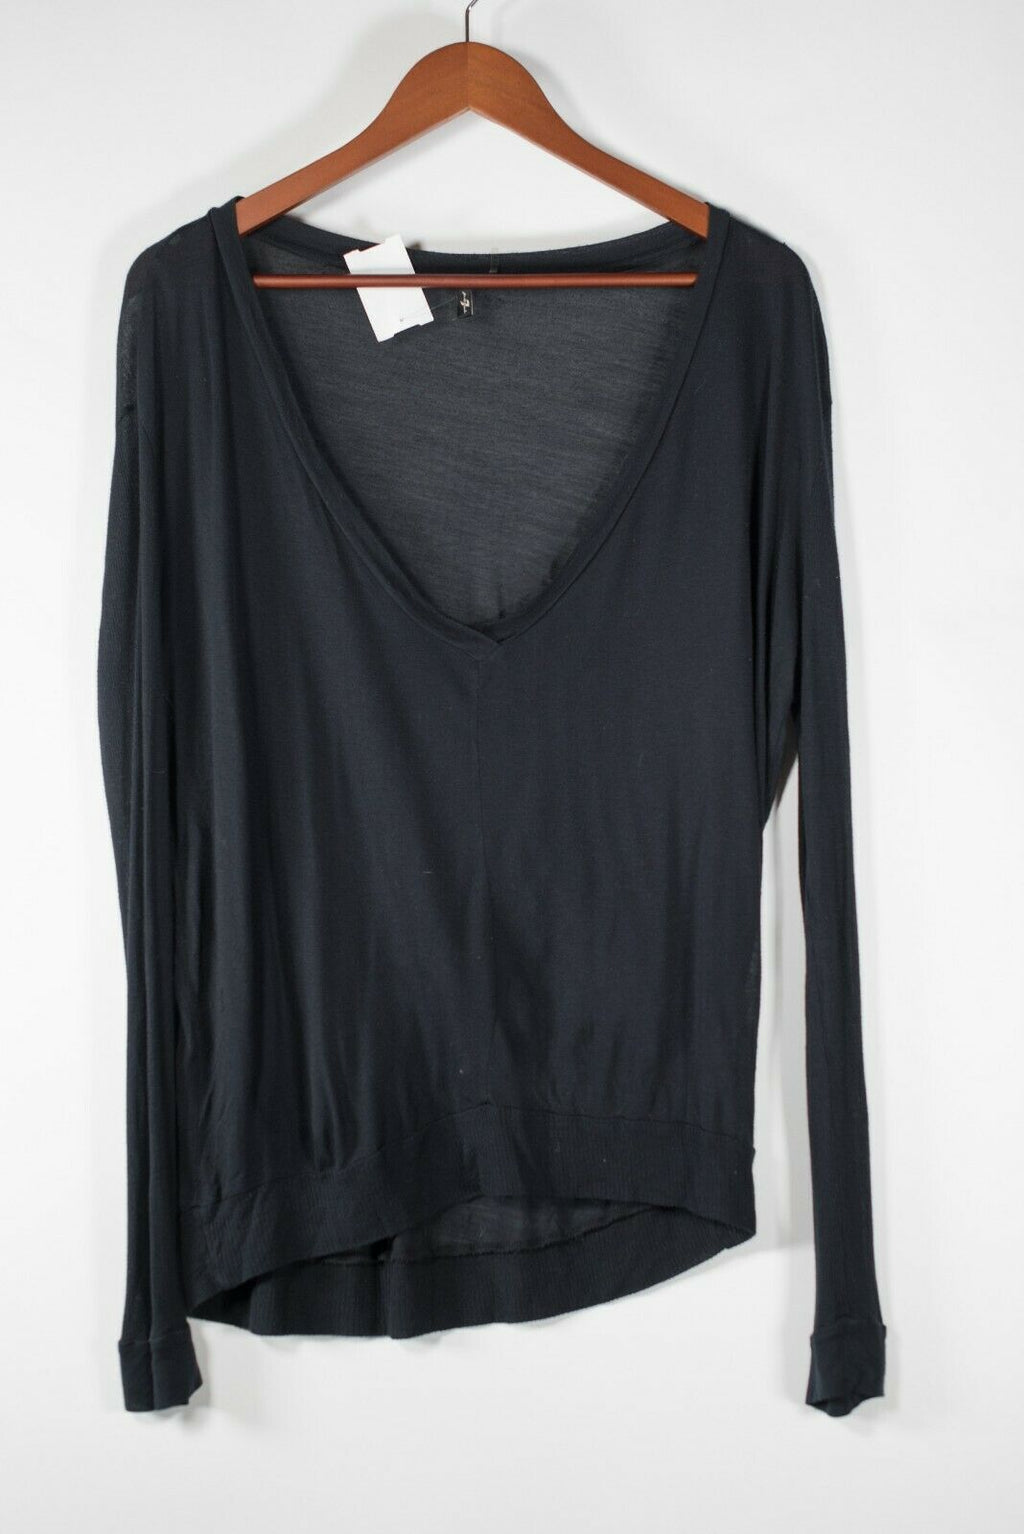 7 For All Mankind Womens Small Black T-Shirt Jersey V-Neck Long Sleeve Sheer Top